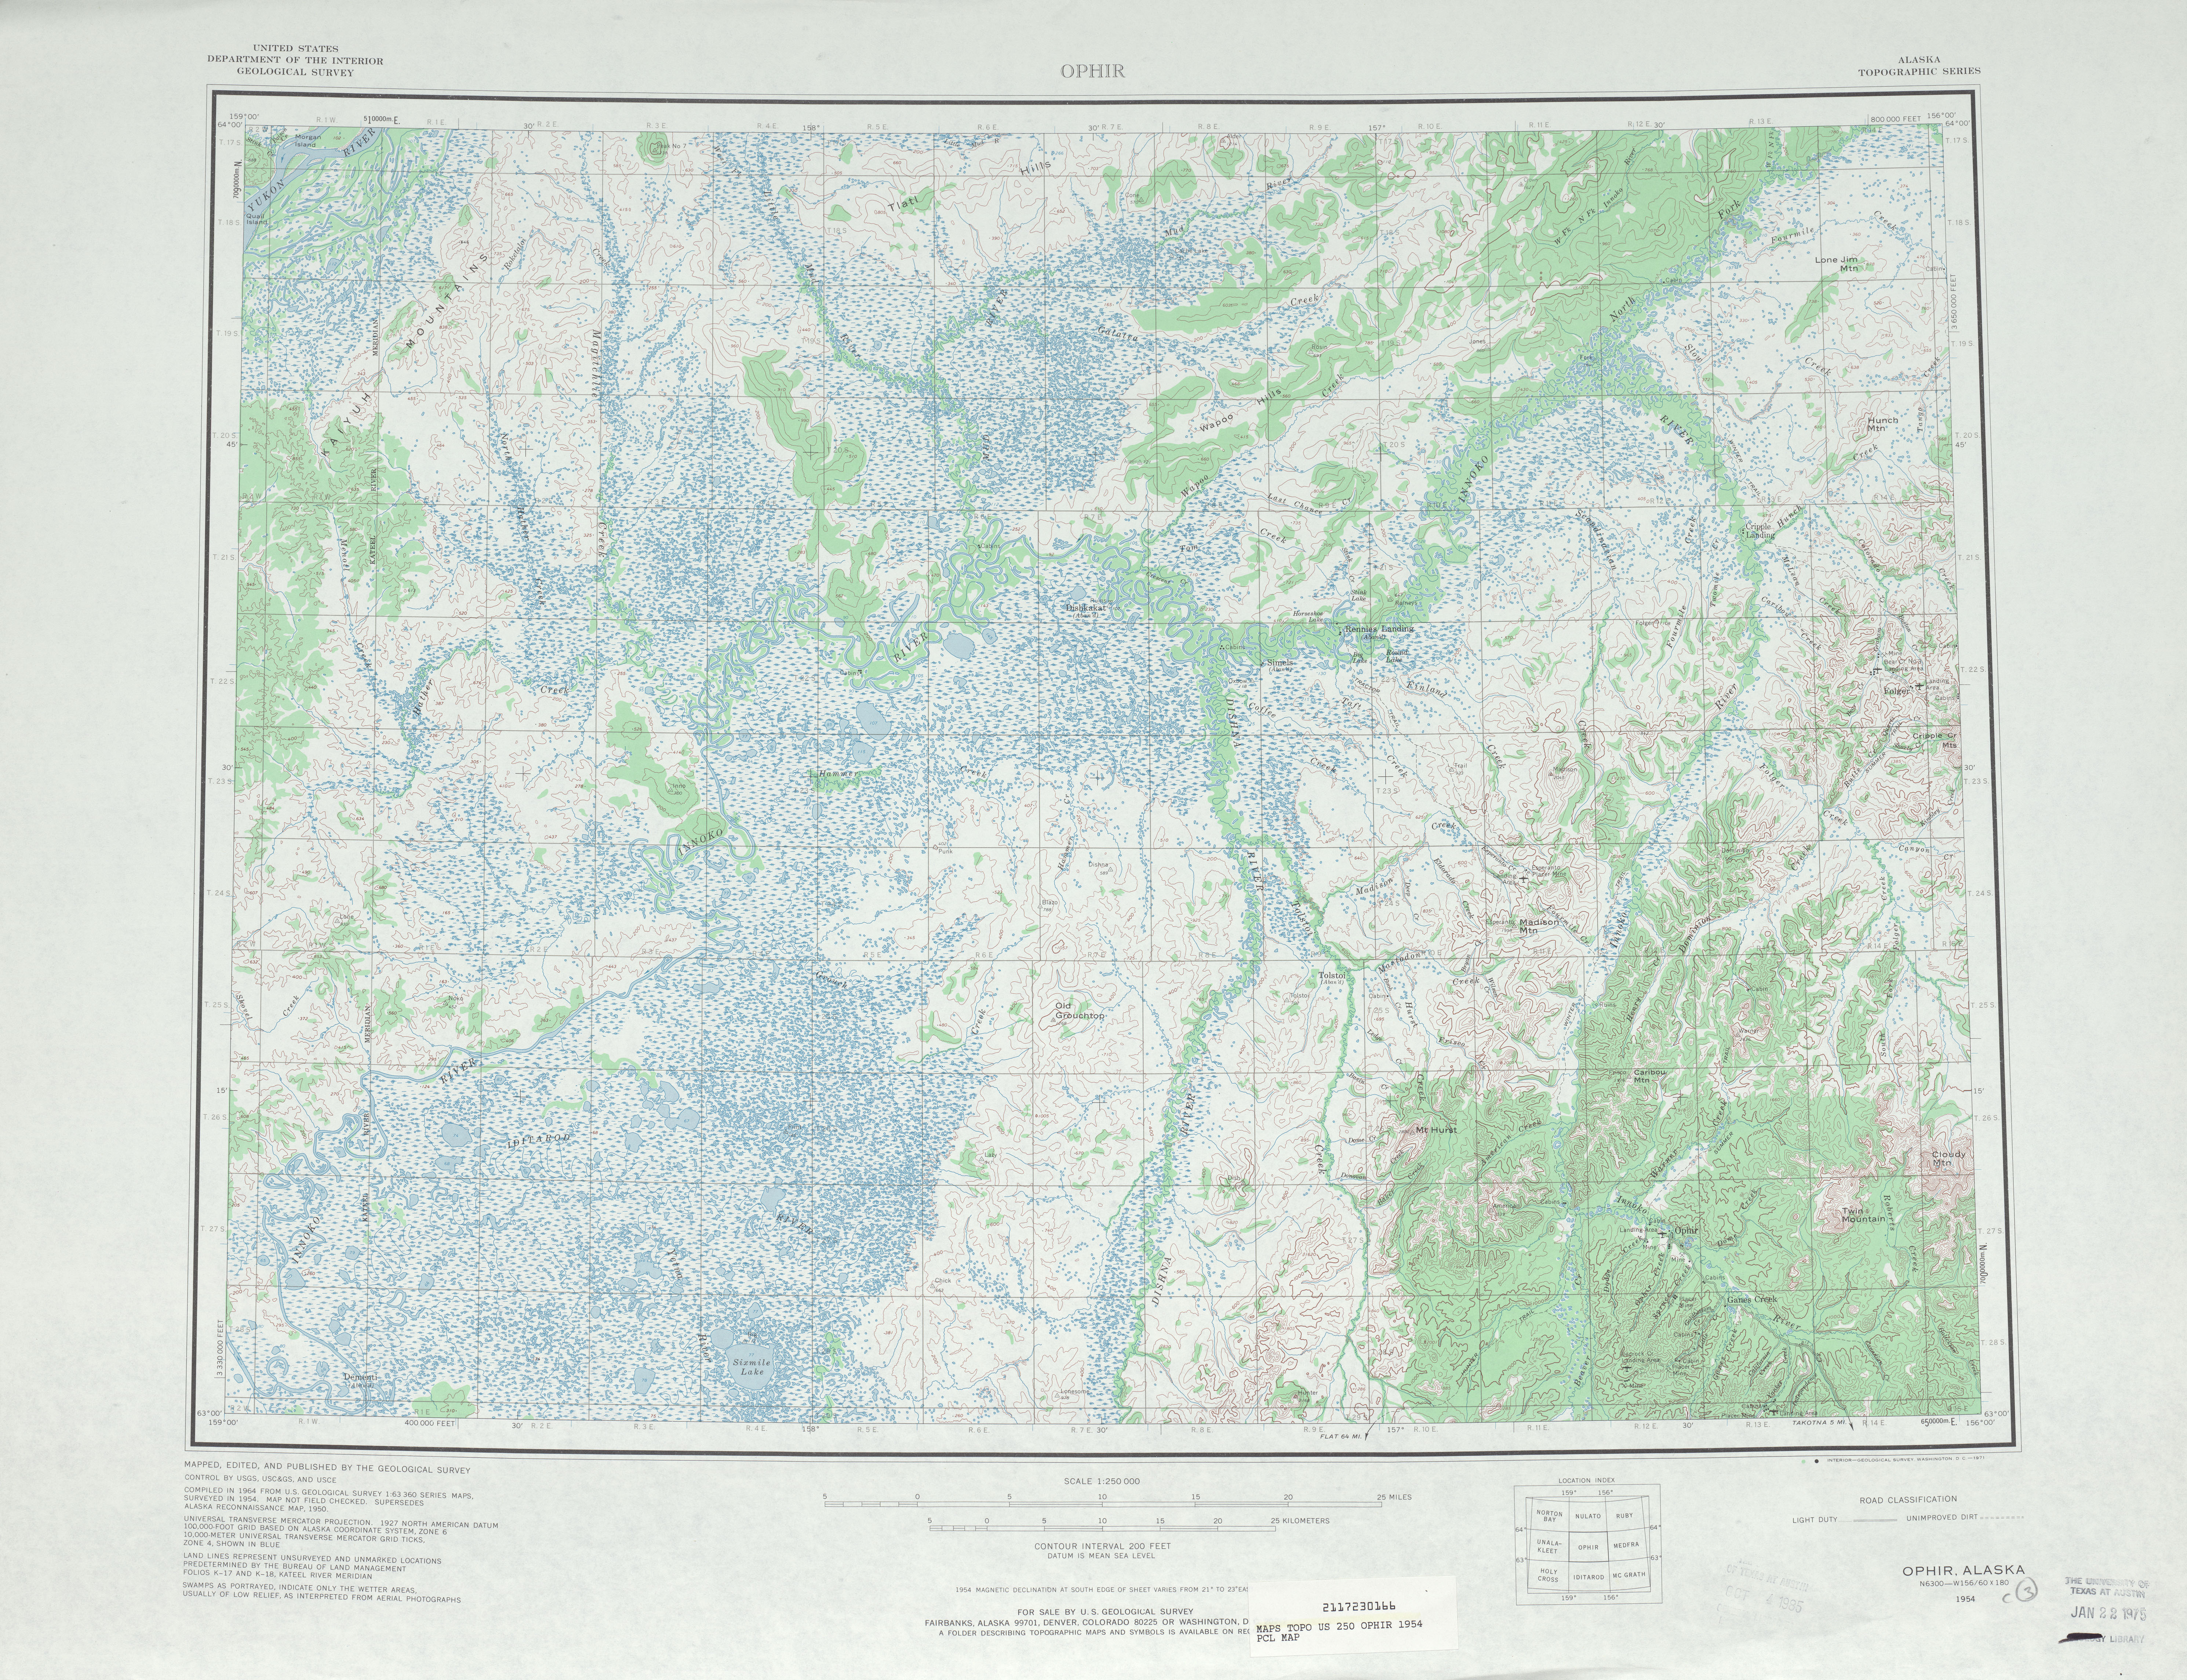 Ophir Topographic Map Sheet, United States 1954